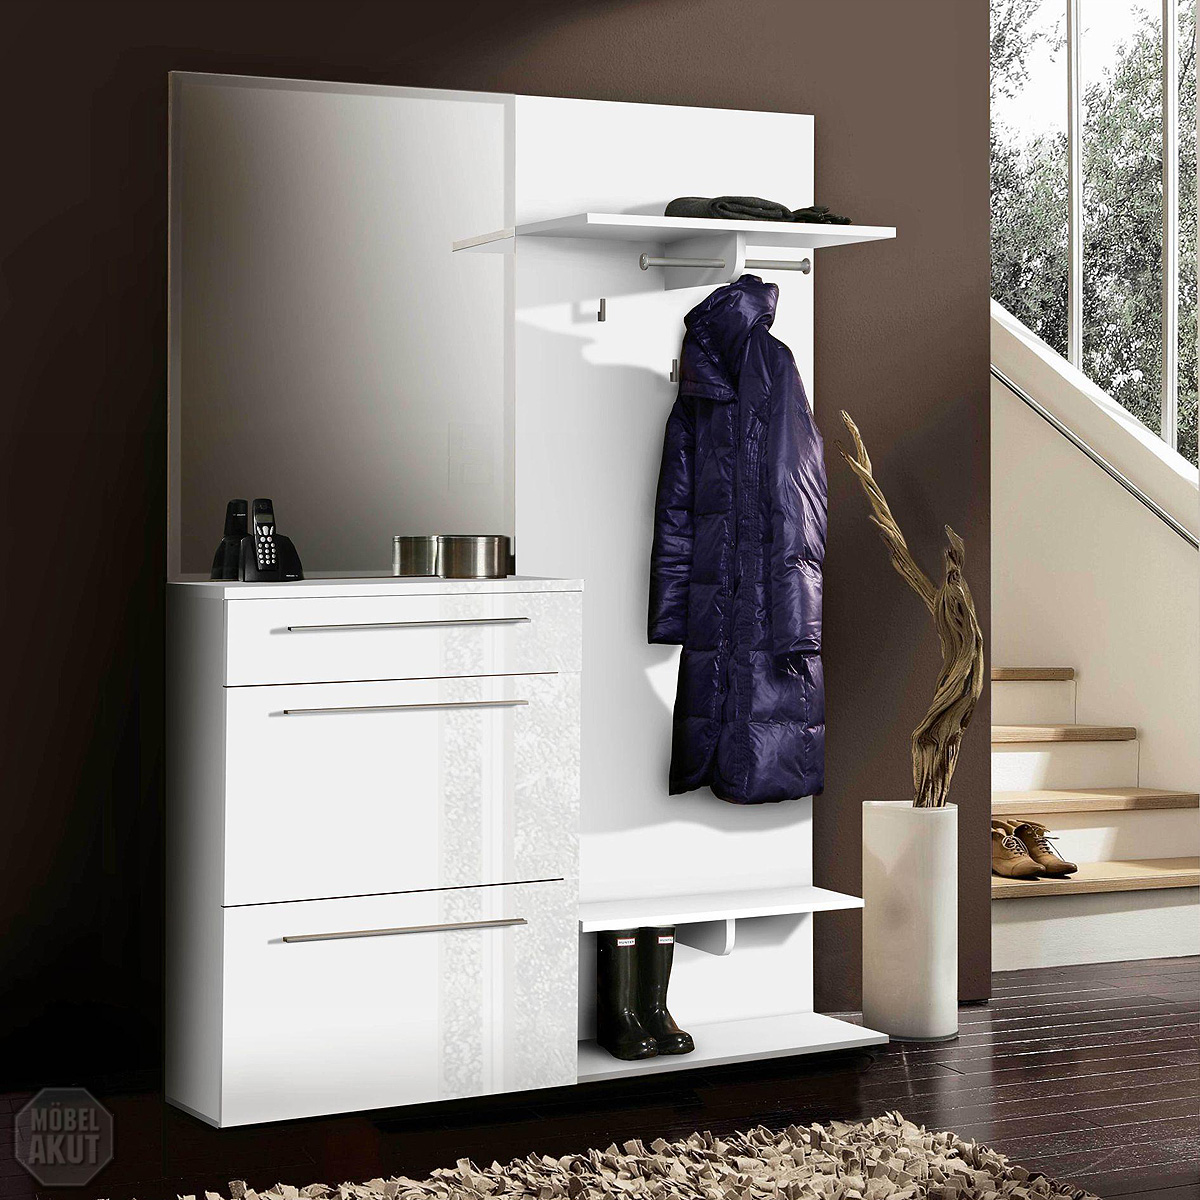 garderobenset sanor garderobe schuhschrank paneel. Black Bedroom Furniture Sets. Home Design Ideas